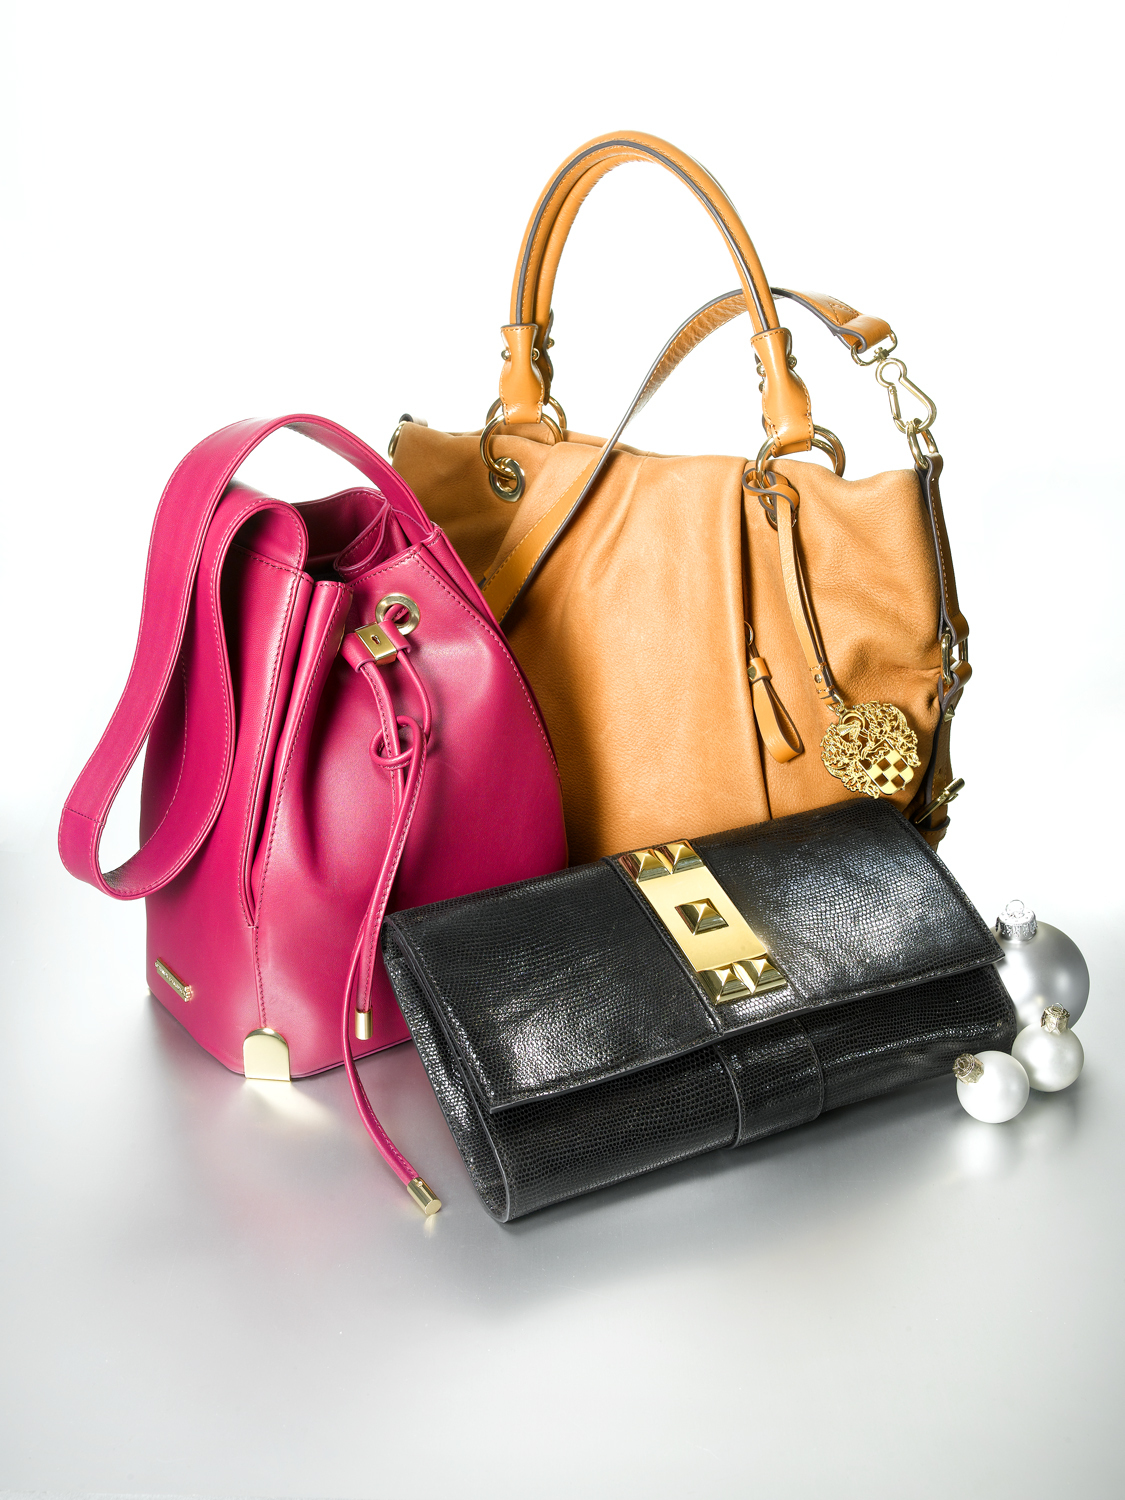 Vince Camuto Satchel $248, Drawstring Bag $178 and Clutch $148, available at select Macy's (Photo: Business Wire)